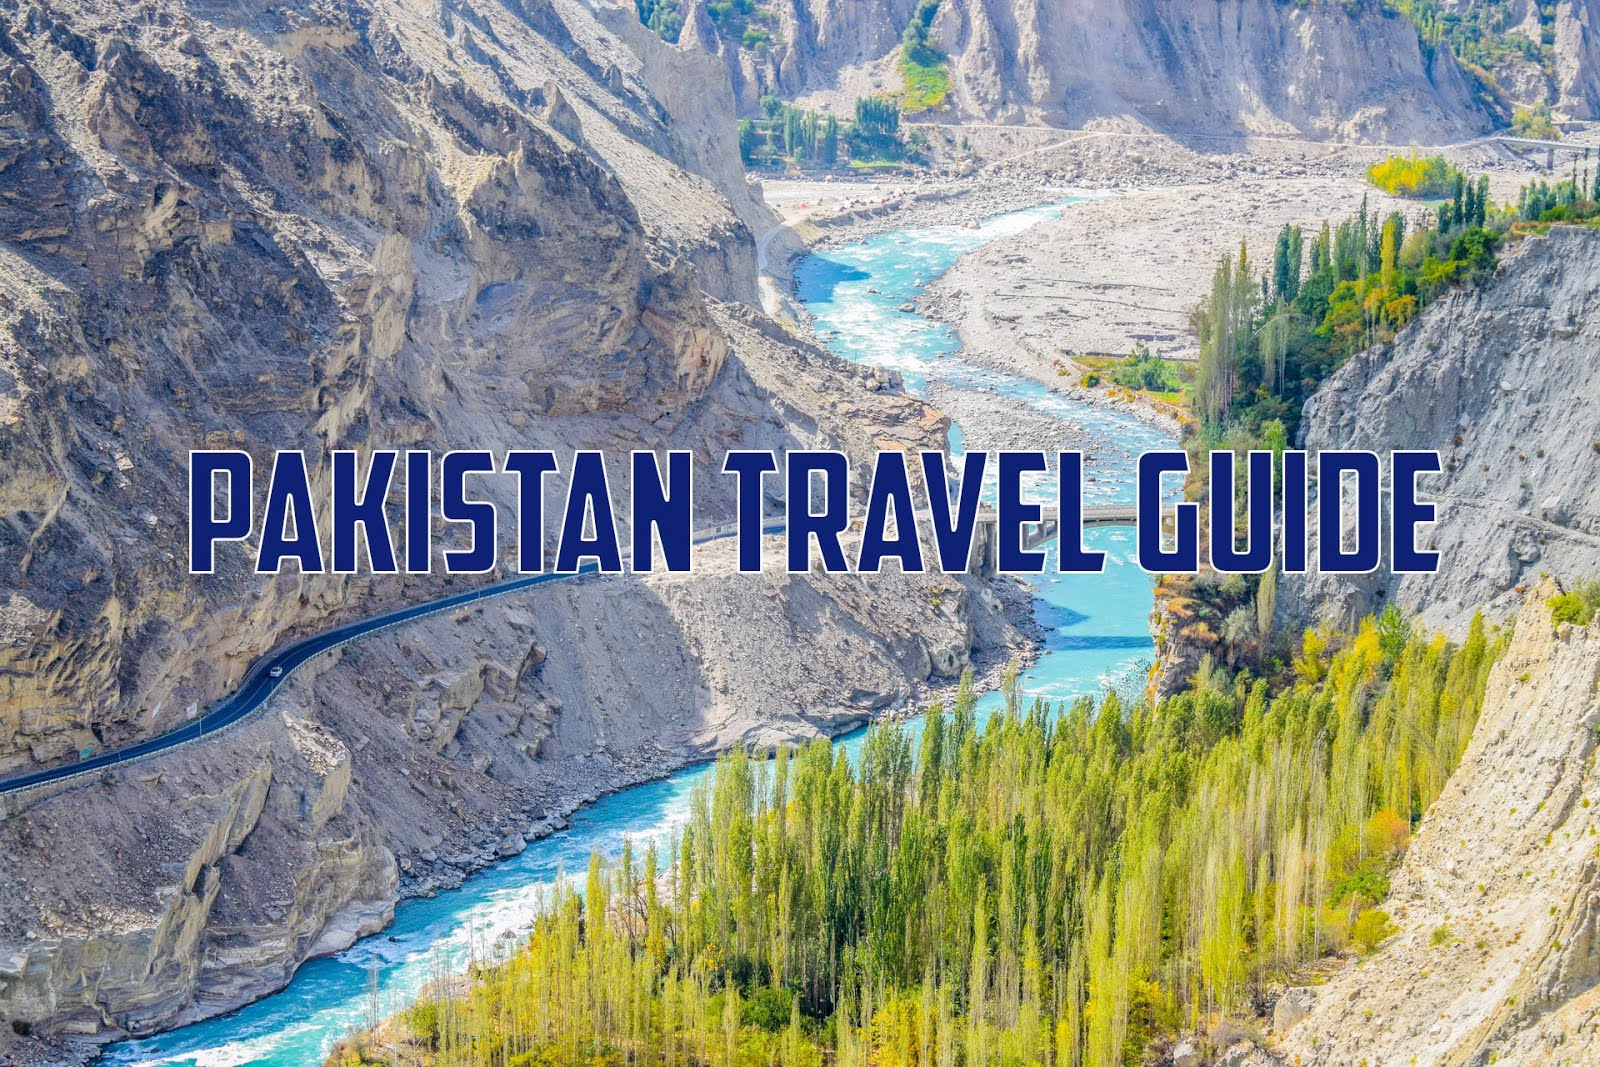 Best in Pakistan, things to know about pakistan,everything you need to know about pakistan,things to know before visiting pakistan,pakistan travel guide,travelling to pakistan,pakistan travel,pakistan travel vlog,pakistan visa,roads of pakistan,pakistan roads,beautiful places in pakistan,beautiful pakistan,food in pakistan,what to wear in pakistan,hotel in pakistan,pakistani food,travel,tourism